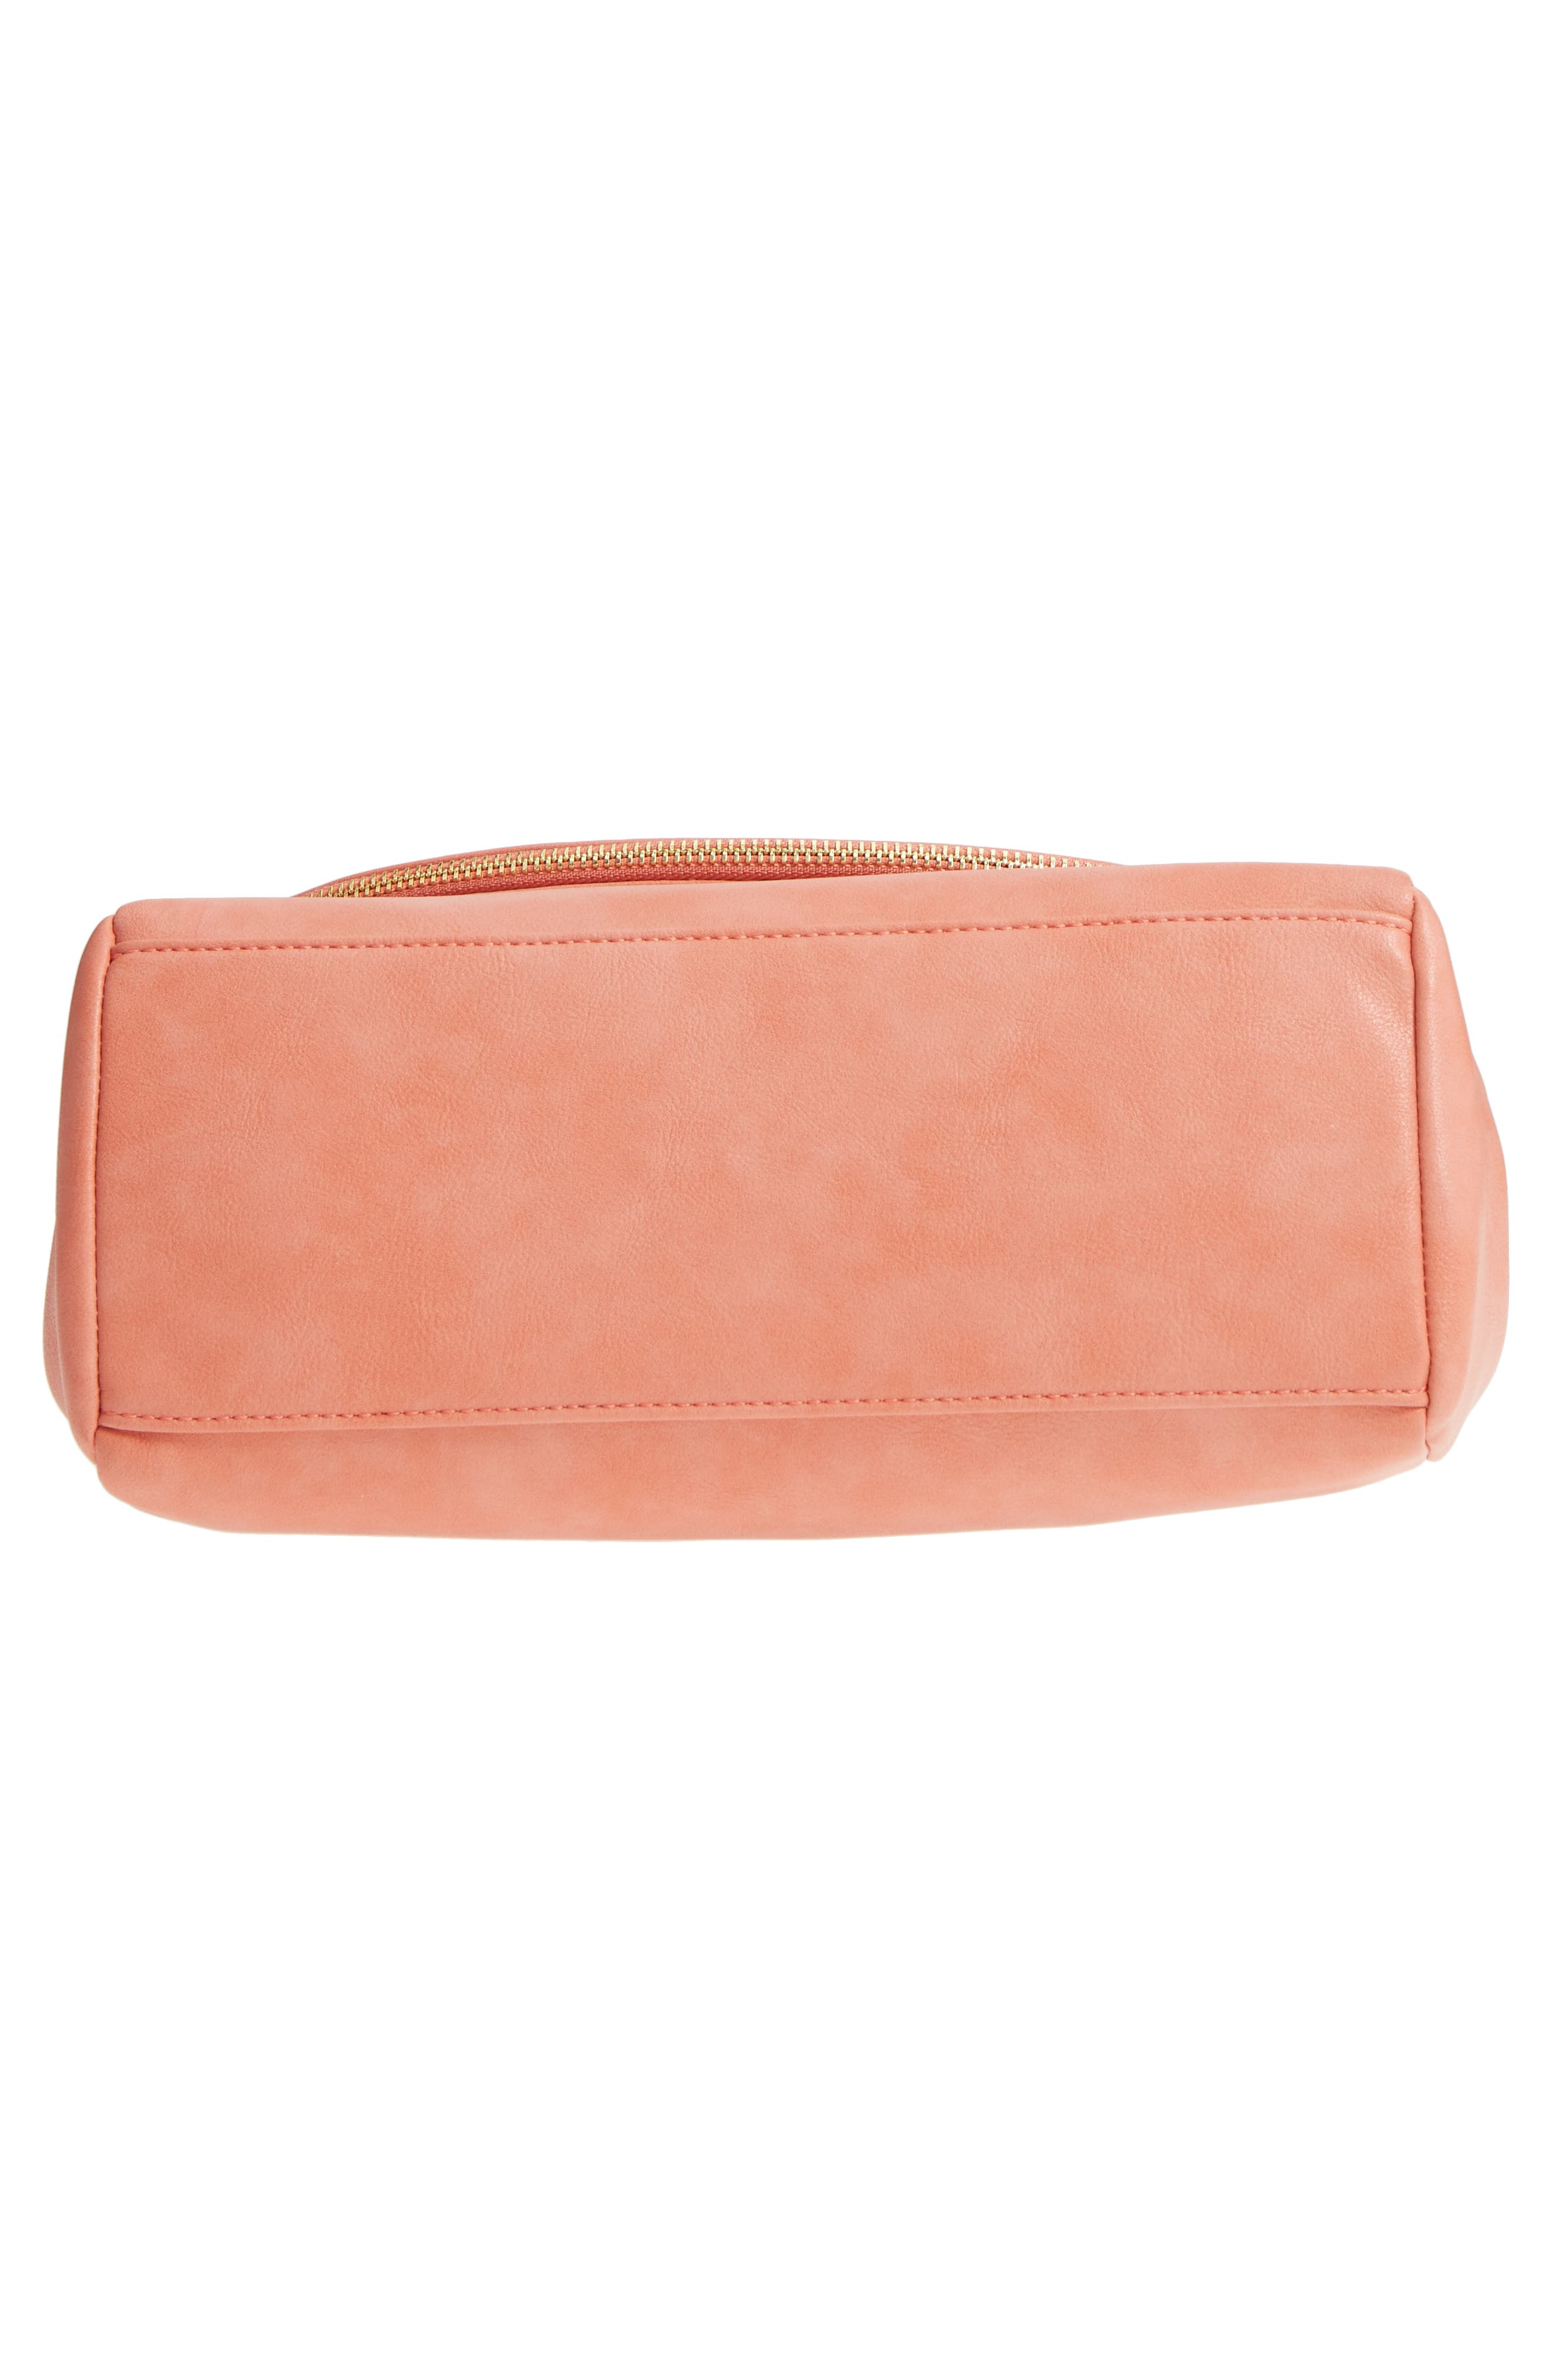 Top Handle Faux Leather Crossbody Bag,                             Alternate thumbnail 6, color,                             Deep Coral